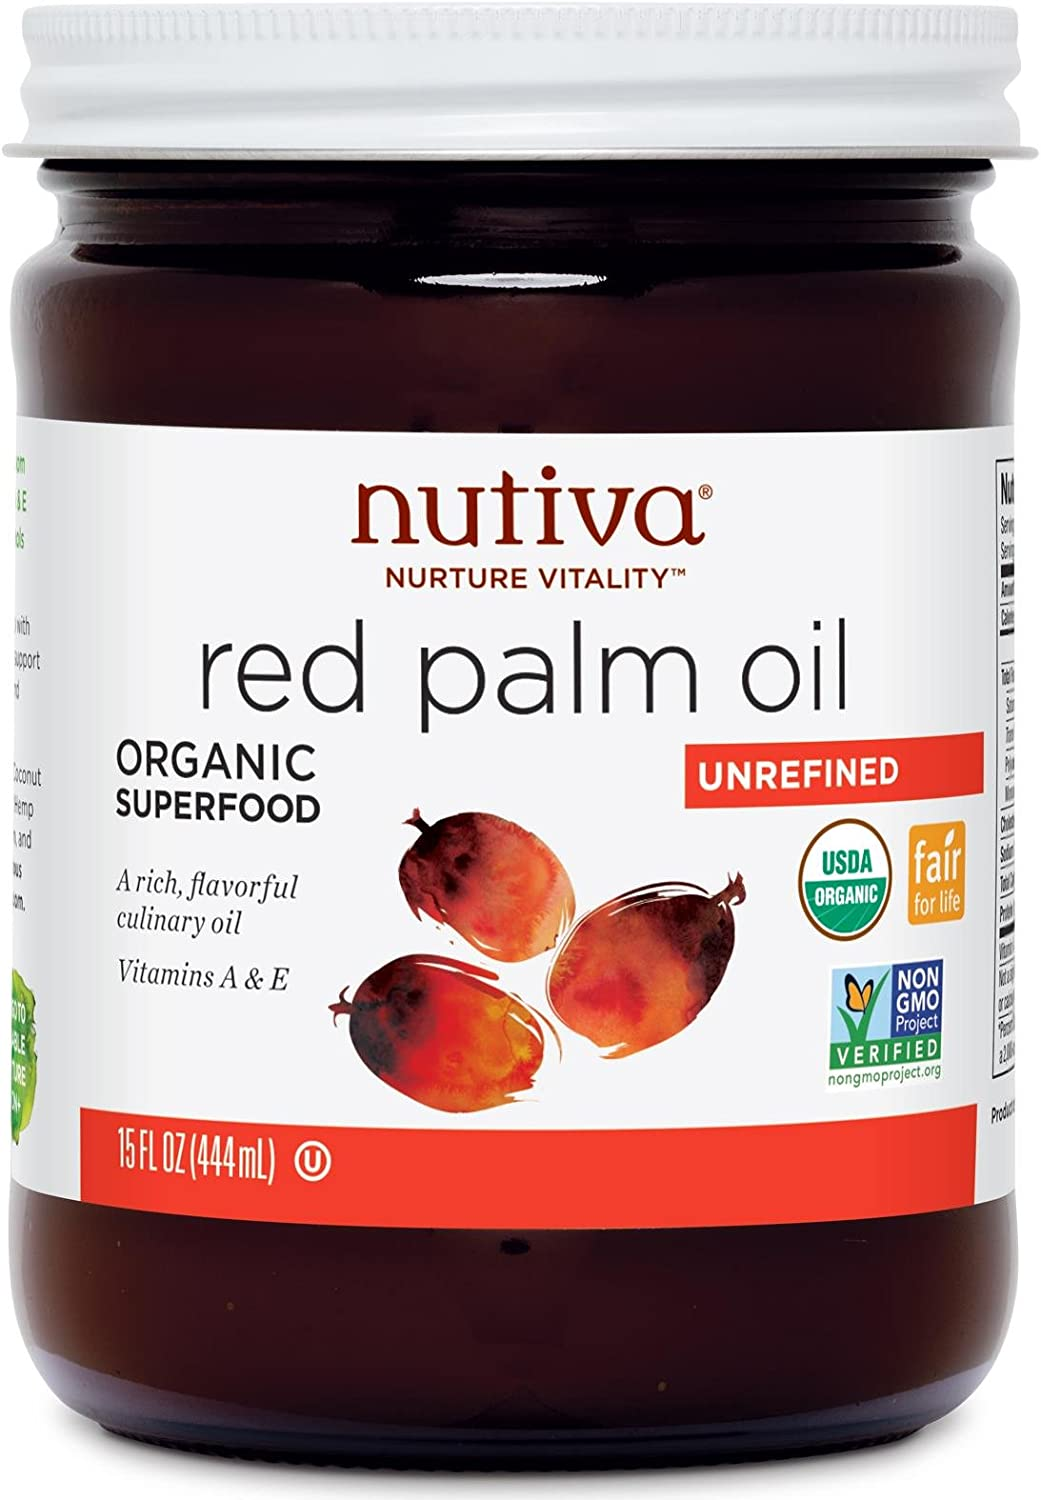 Red Palm Oil, Nutiva Image